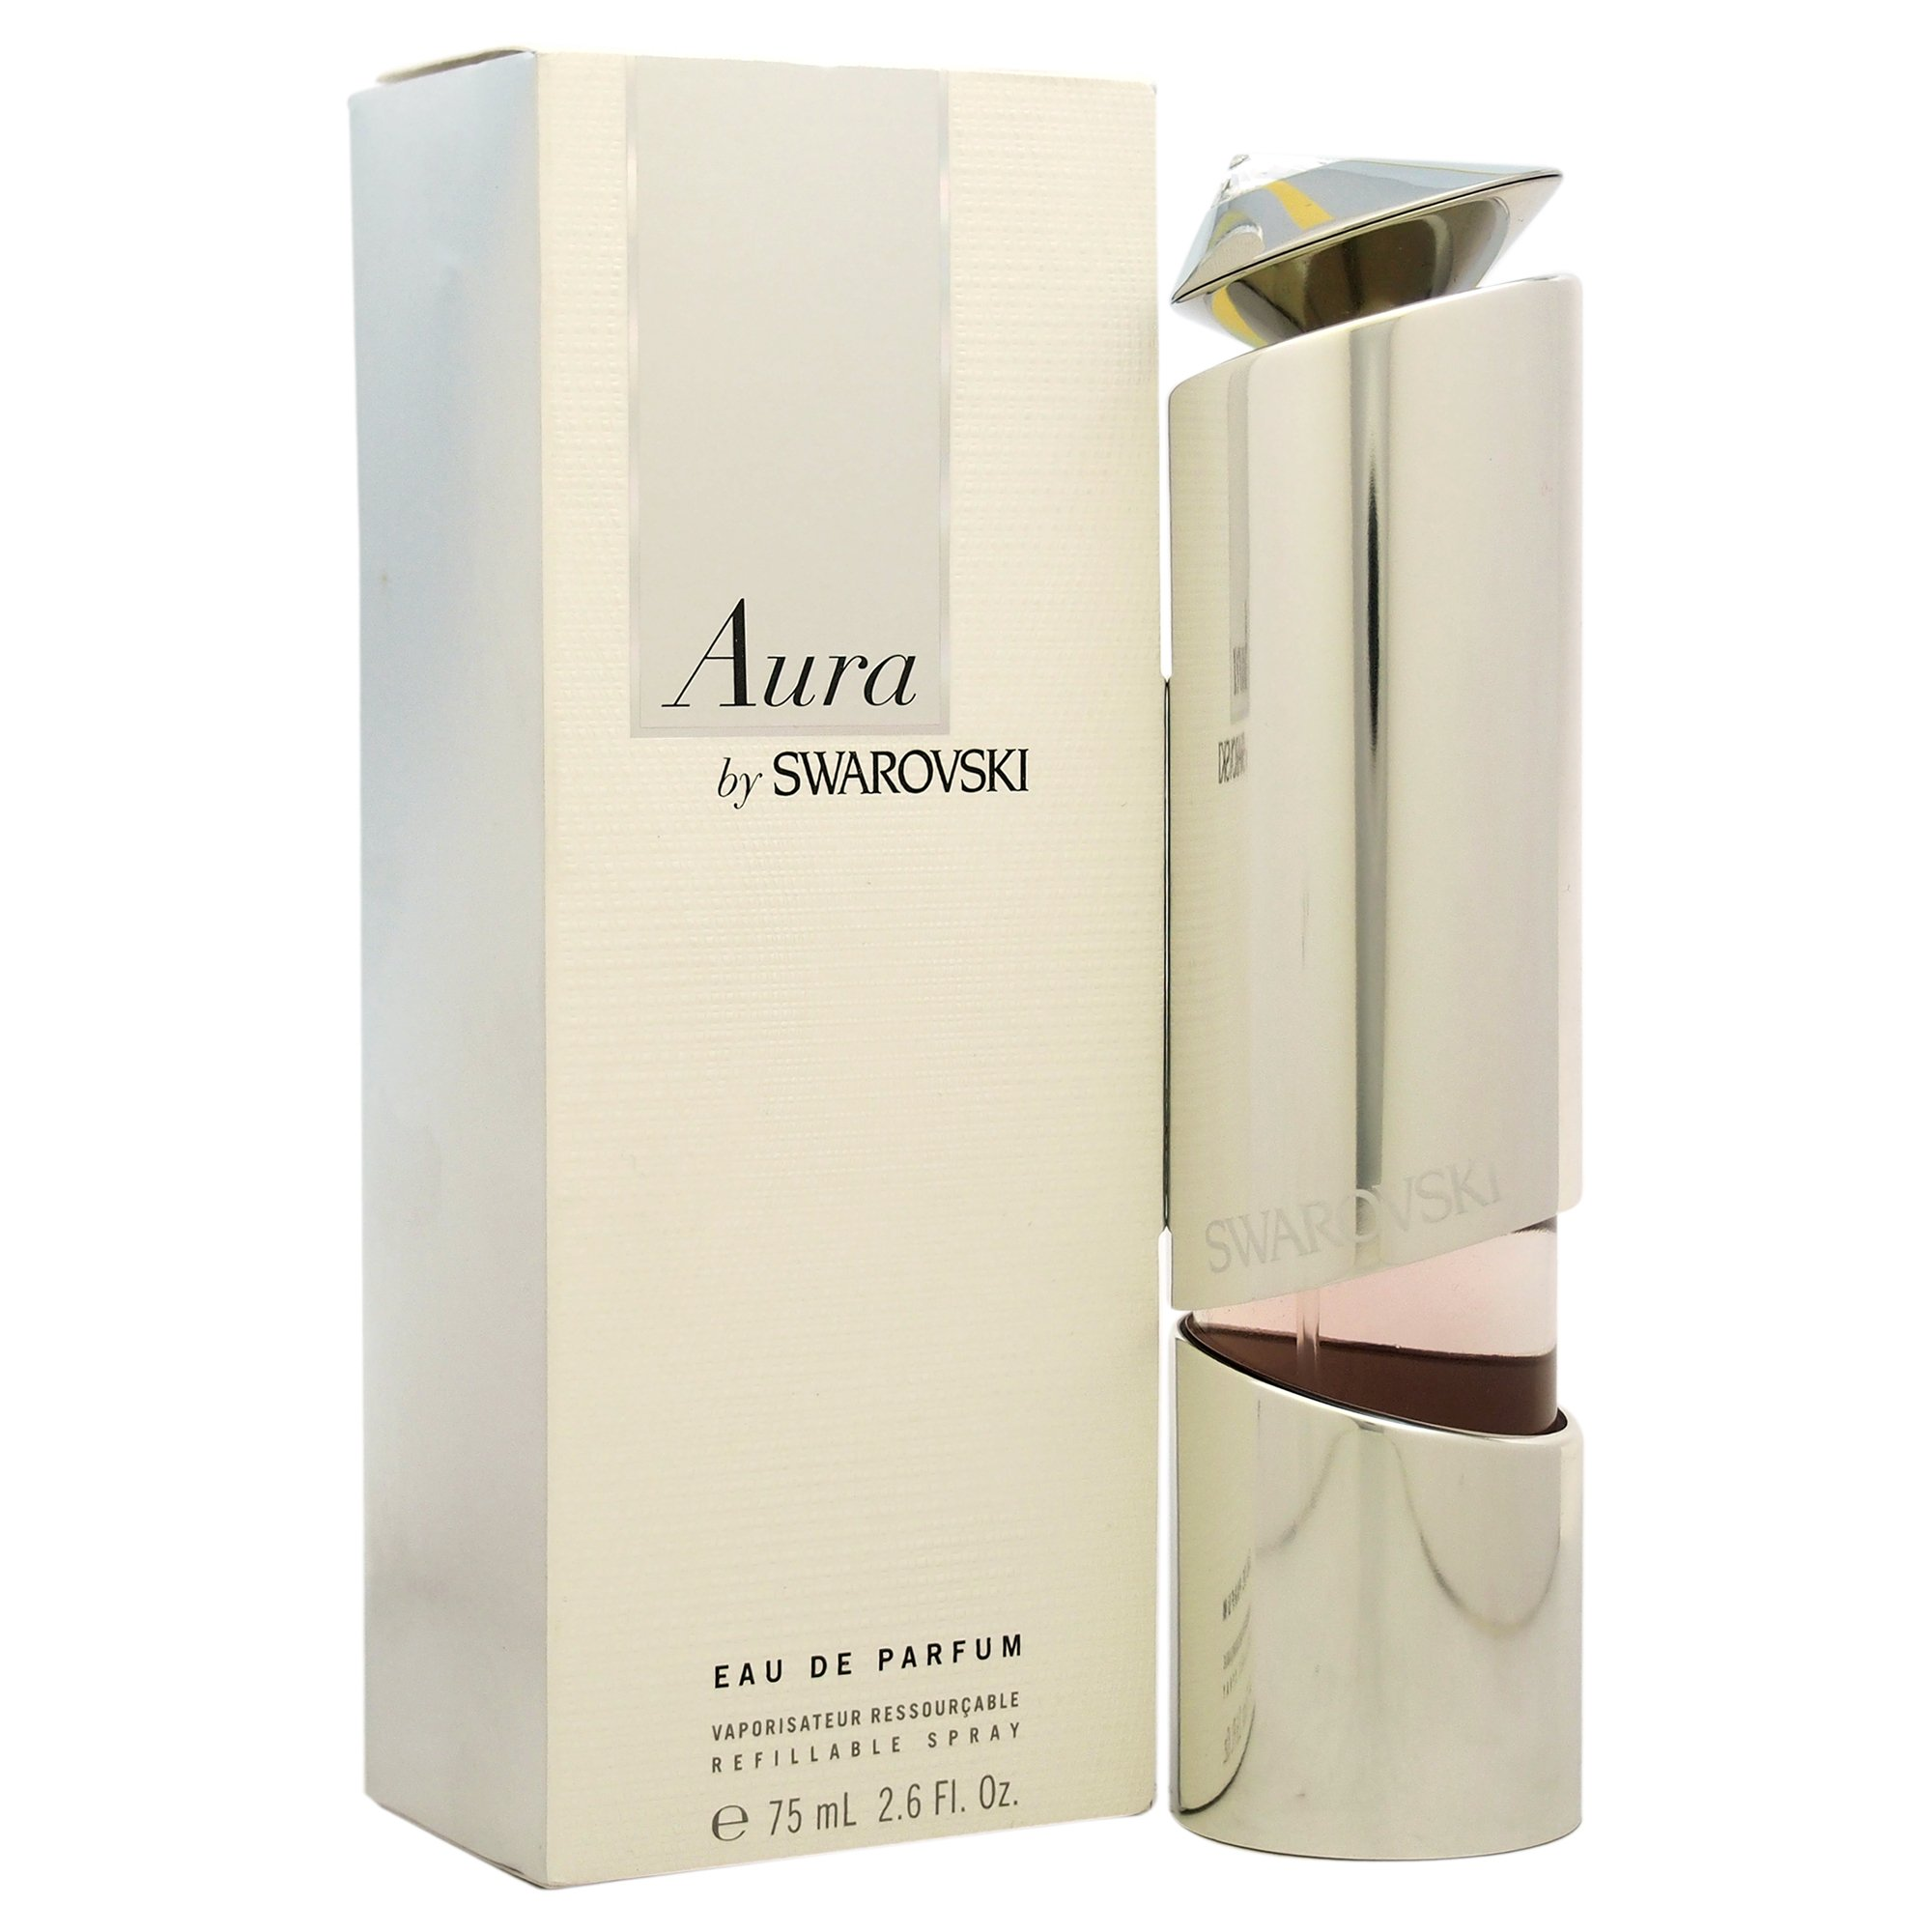 Swarovski Aura Eau De Parfum Refillable Spray, 2.6 Ounce